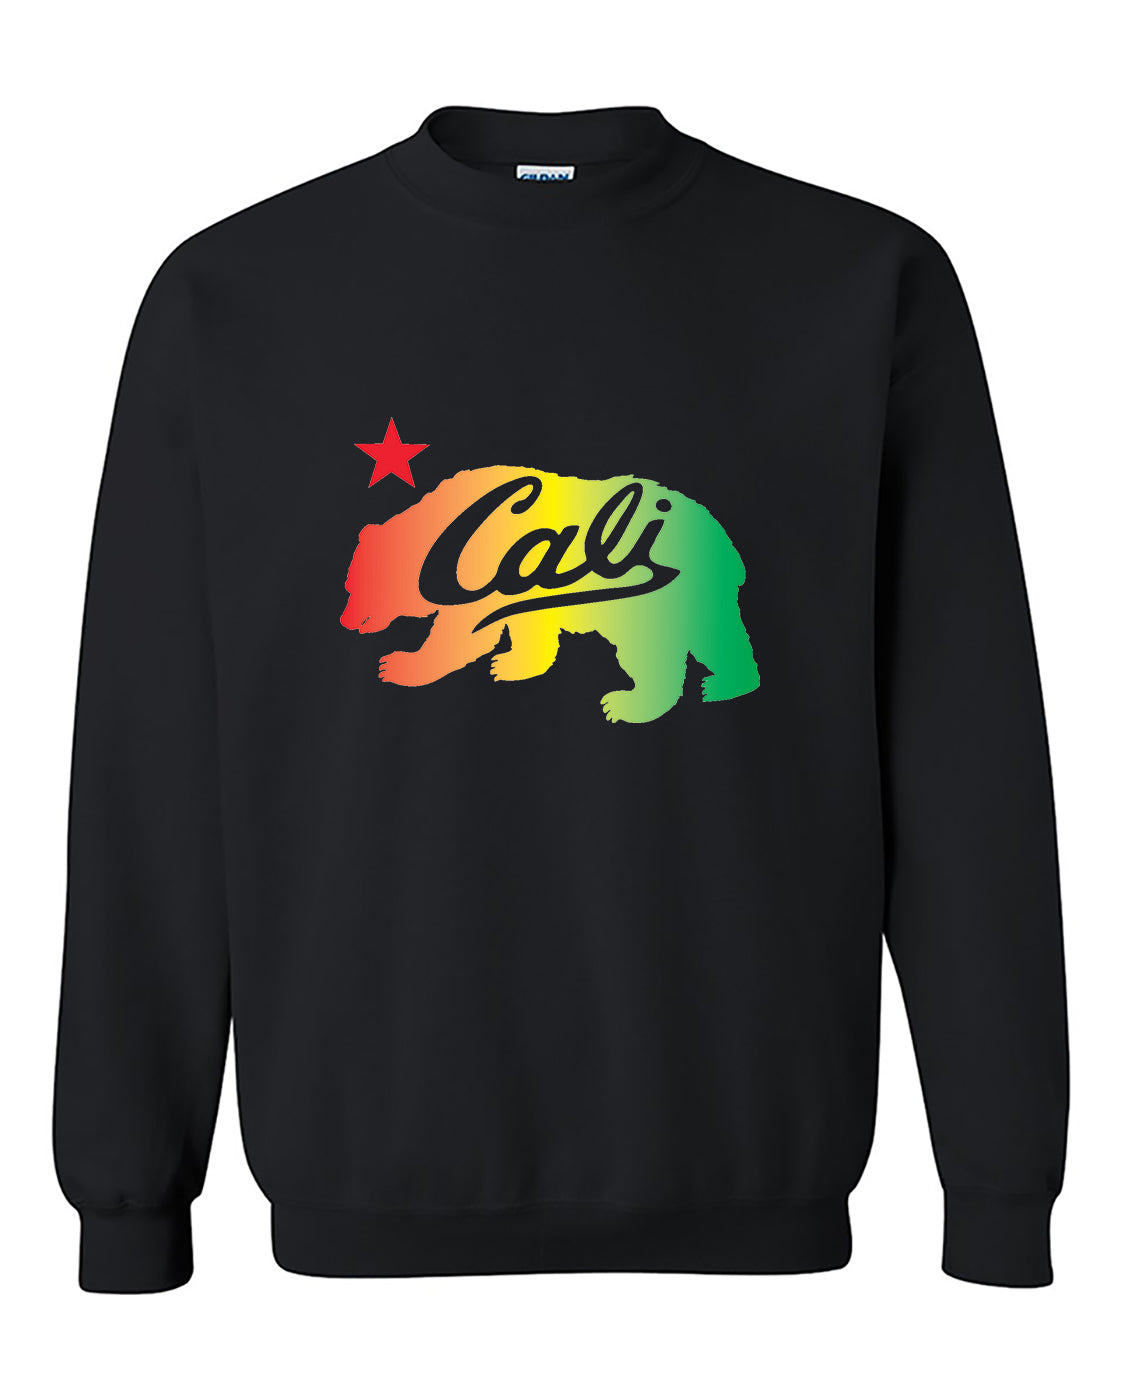 Cali Bear Rasta California Republic 420 Marijuana Weed Smokers Crewneck Sweater